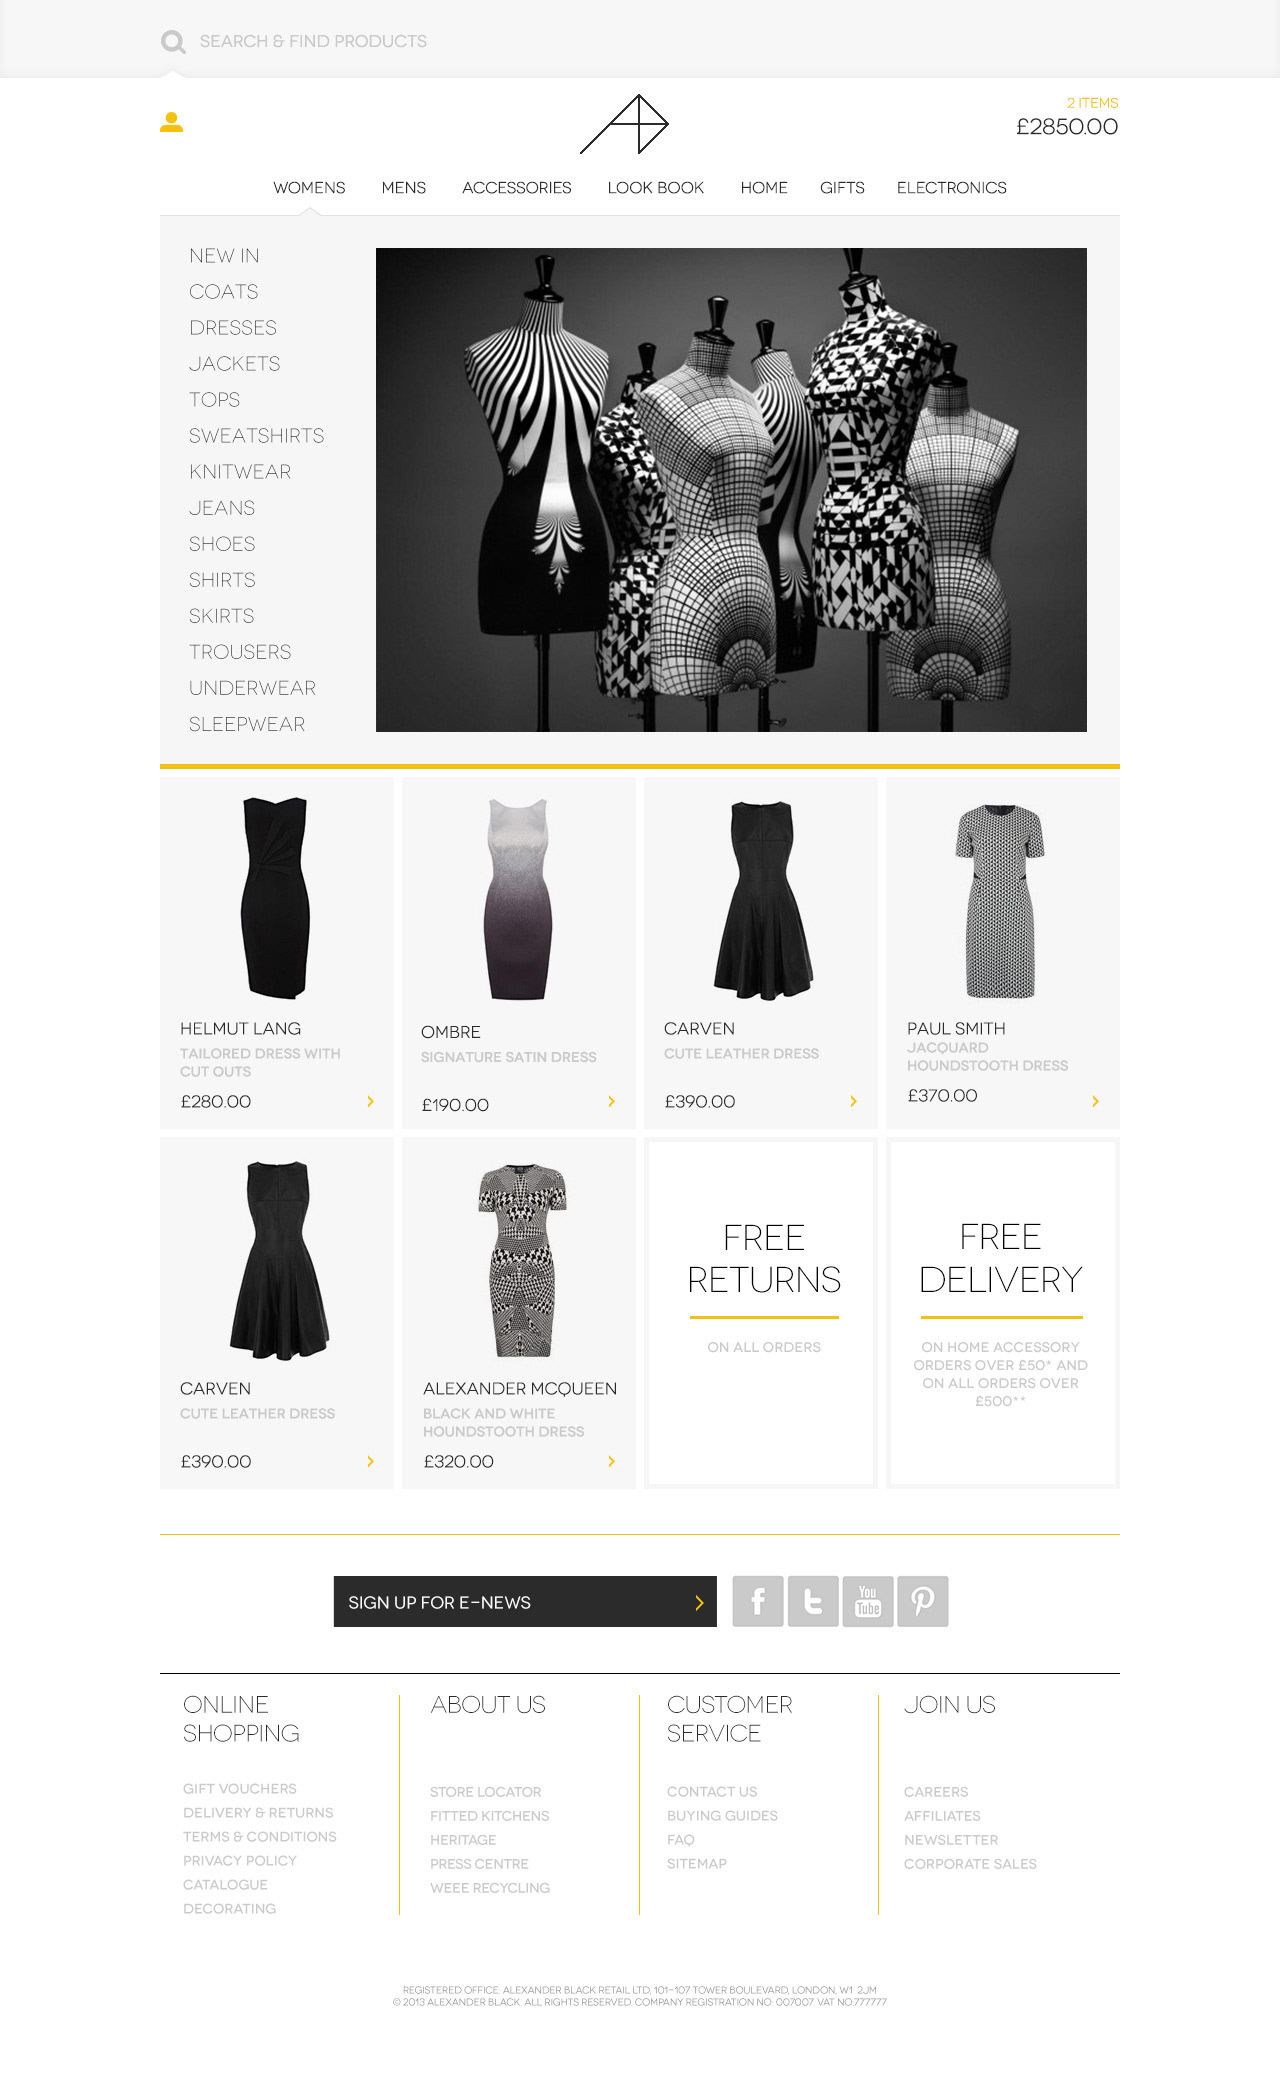 Web design illustration by john melven alexander black blueprint responsive demo site blueprint for bt expedite to demo the fresca commerce platform fcp ecommerce toolplatform copyright bt expedite malvernweather Choice Image